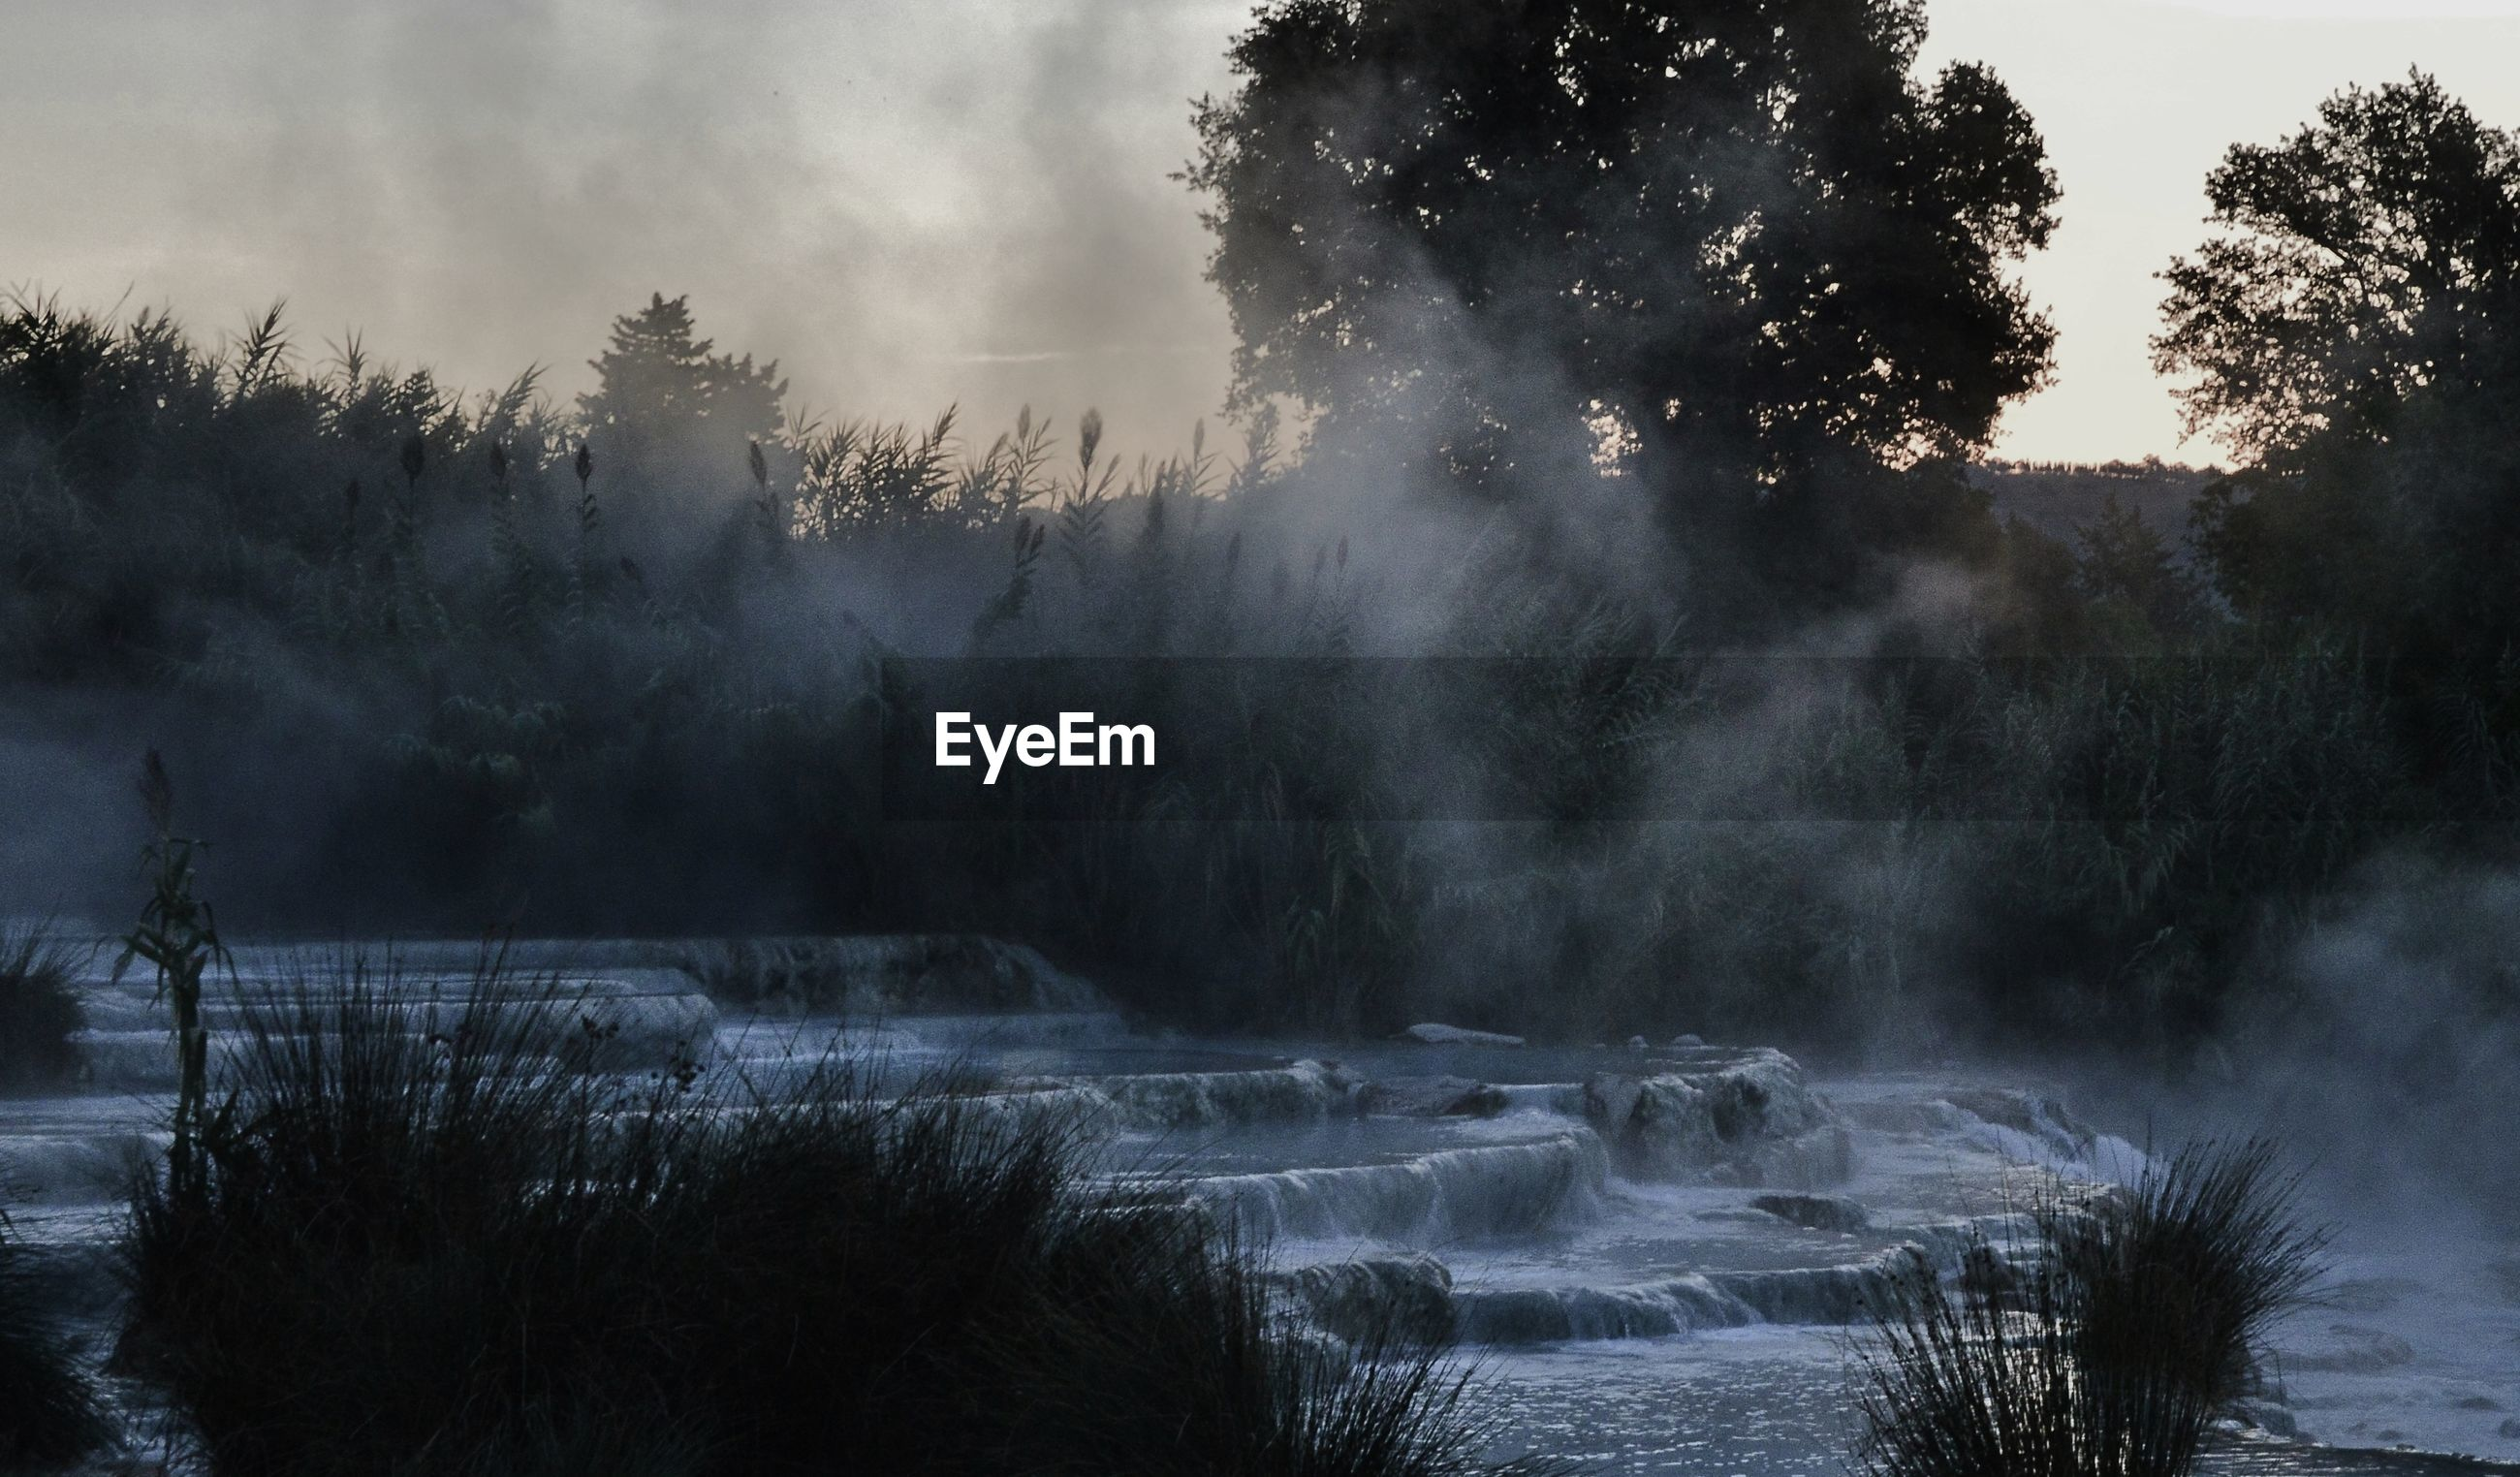 Scenic view of steam emitting for geyser